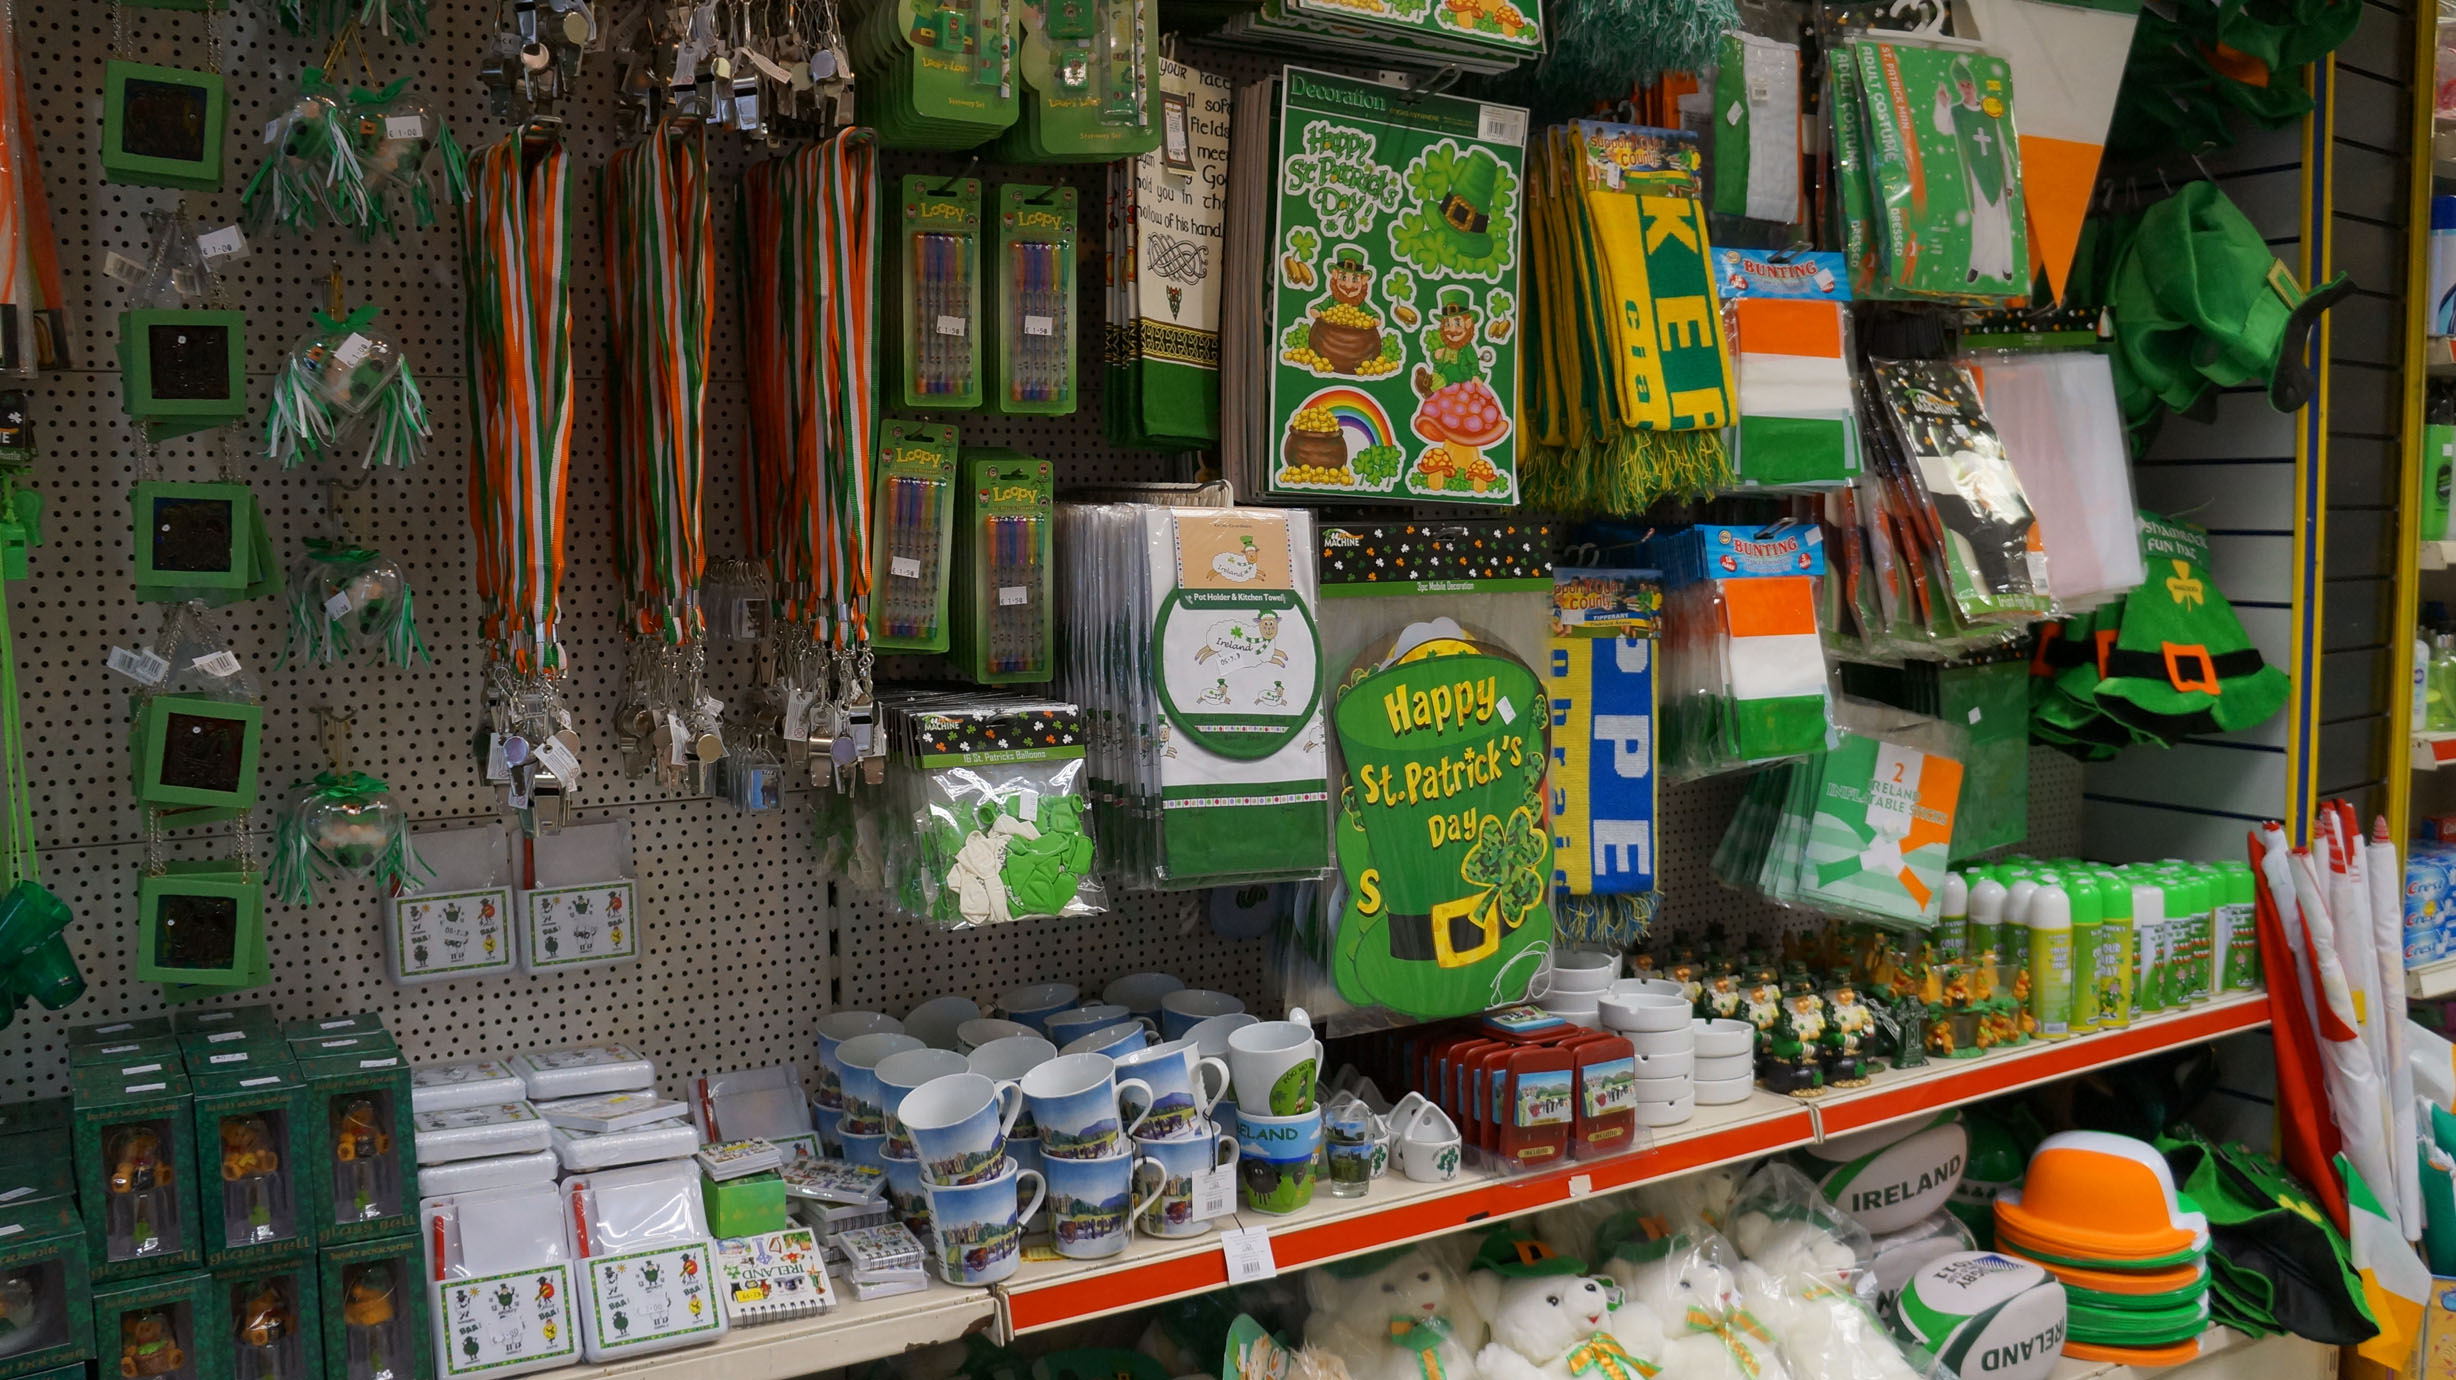 Patty's day at the 'EURO SHOP'